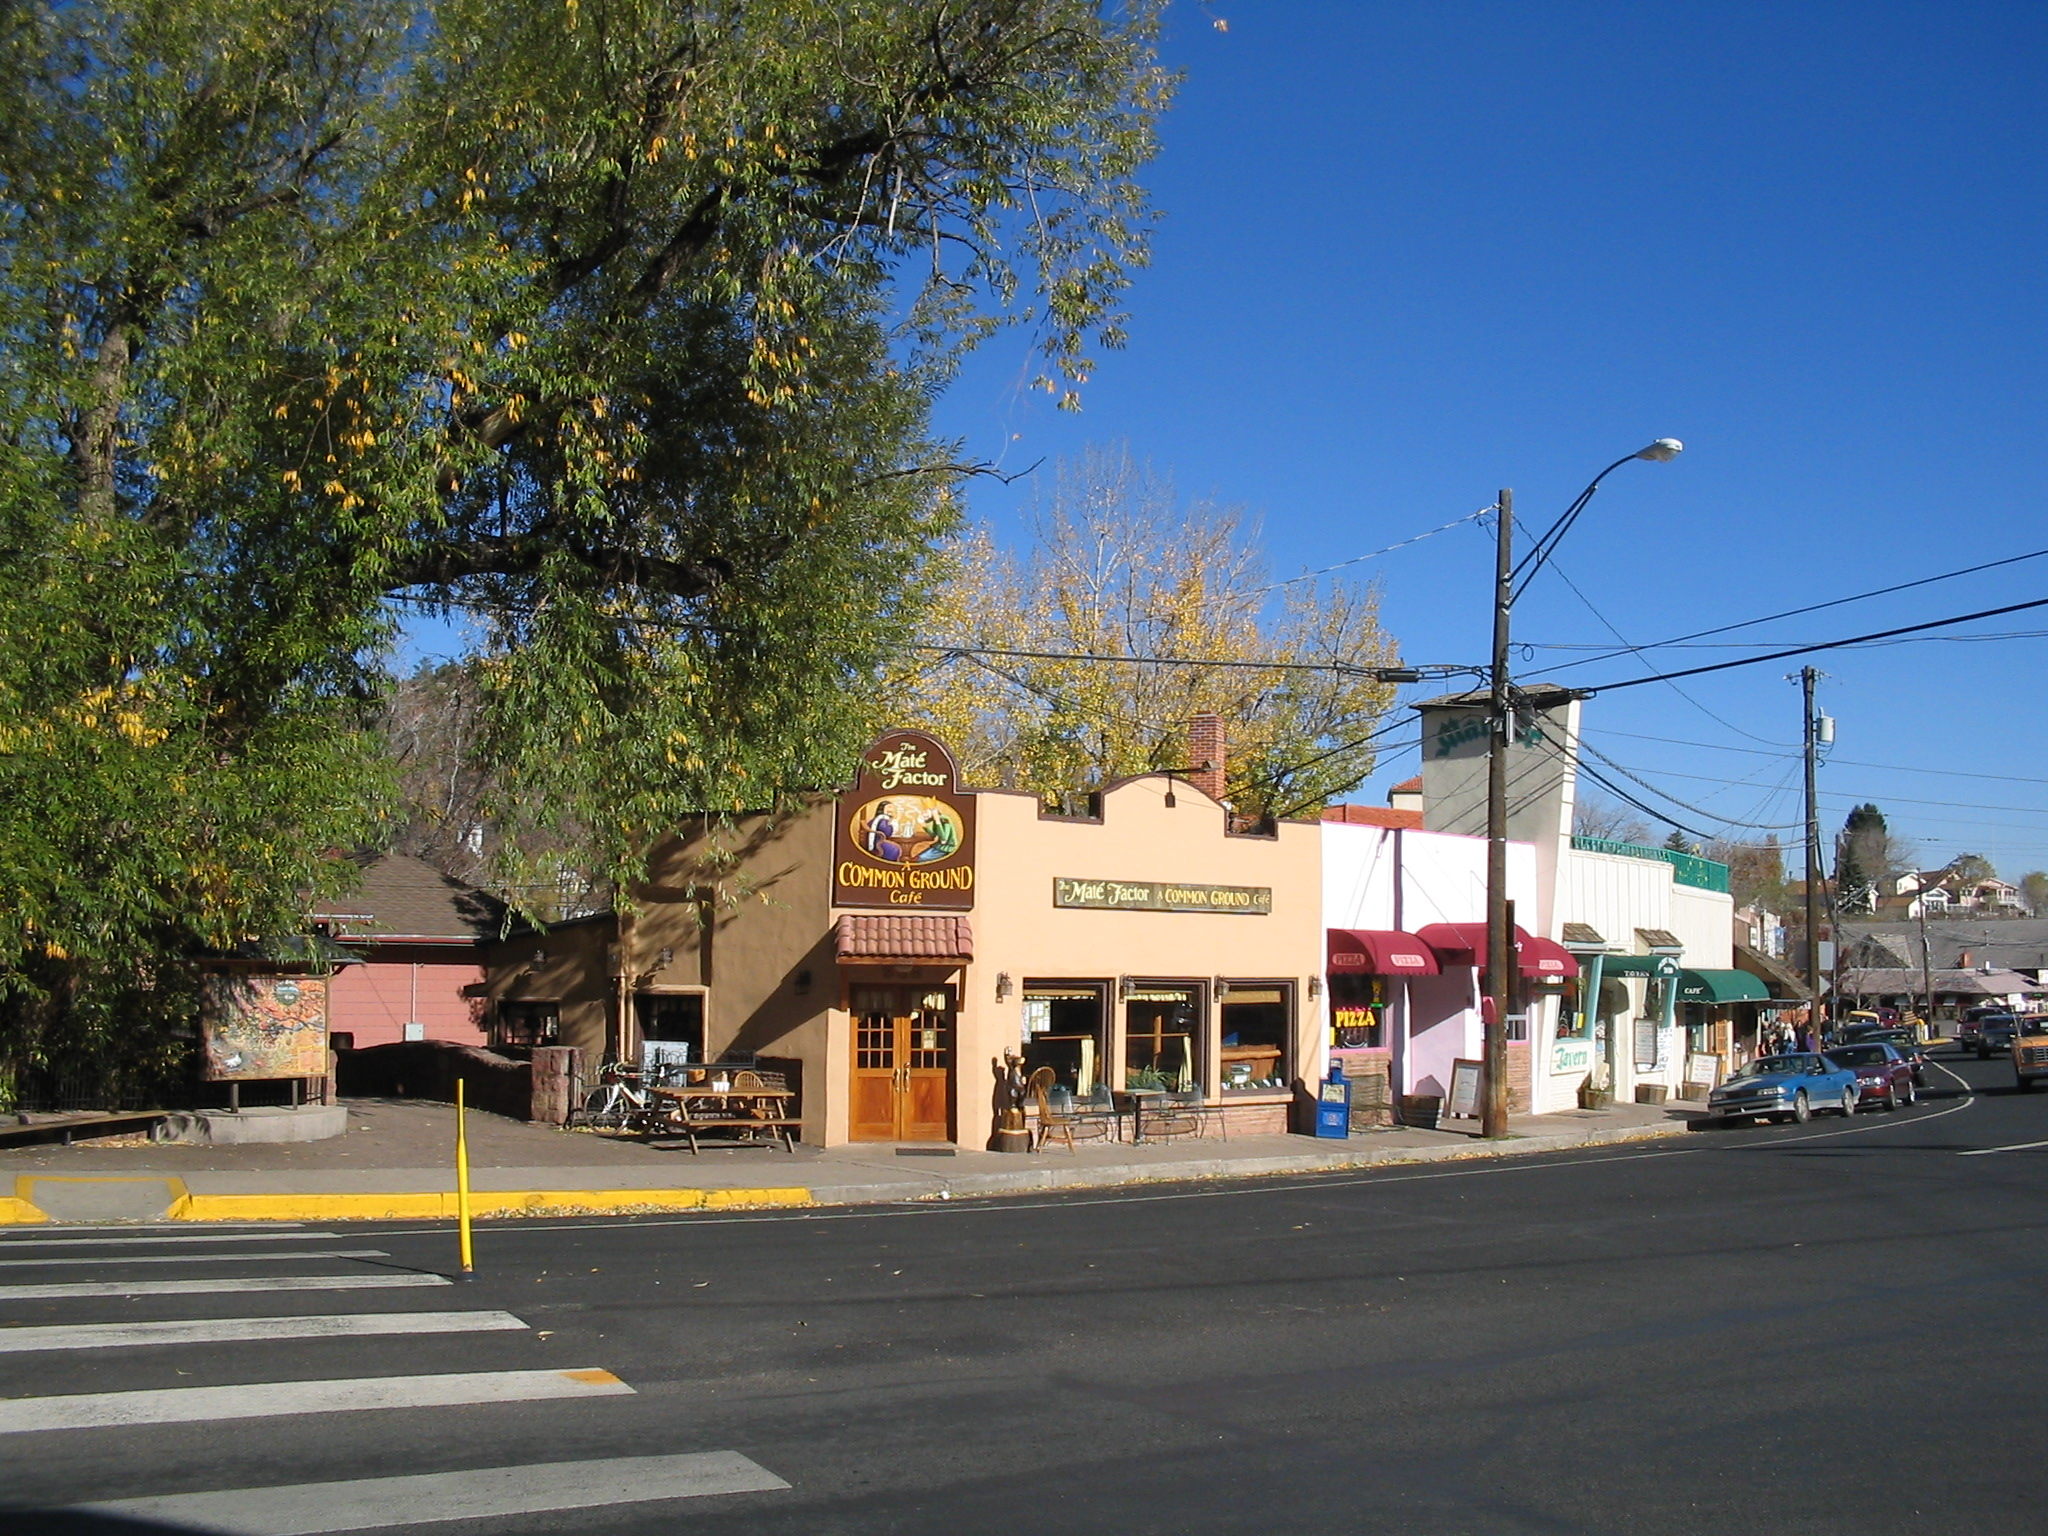 manitou springs dating site Colorado's coolest small town located conveniently on the west side of colorado springs, manitou springs is the perfect place to escape – whether it's for one day, a weekend, or an entire week with plenty of attractions, shopping, and dining options, there's plenty to do without breaking the bank.